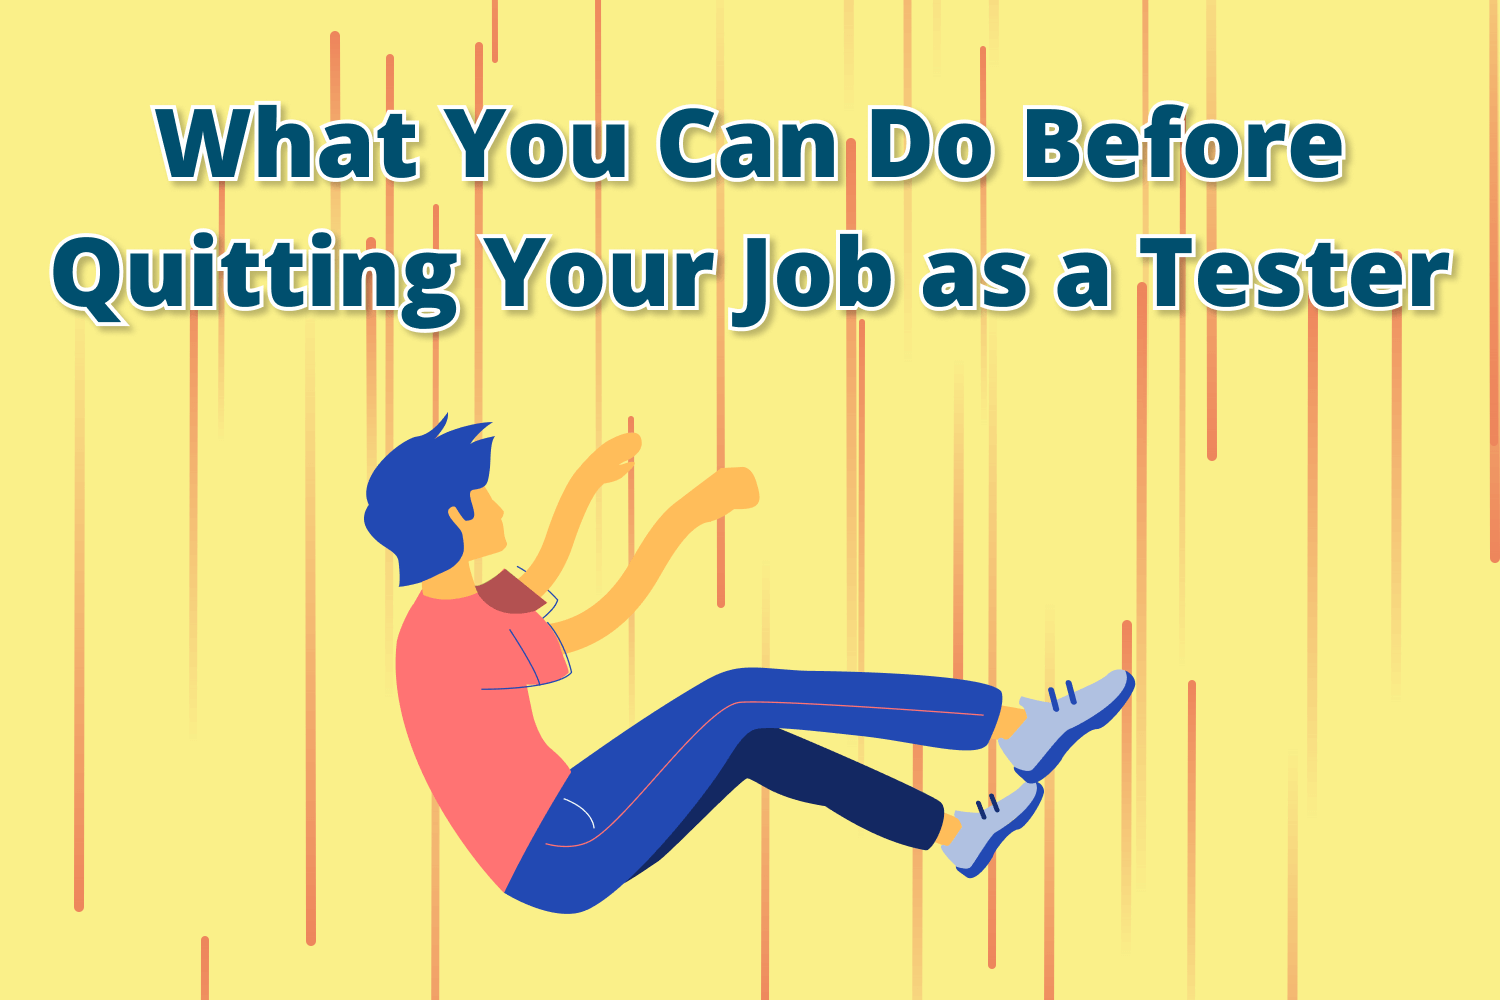 What You Can Do Before Quitting Your Job as a Tester